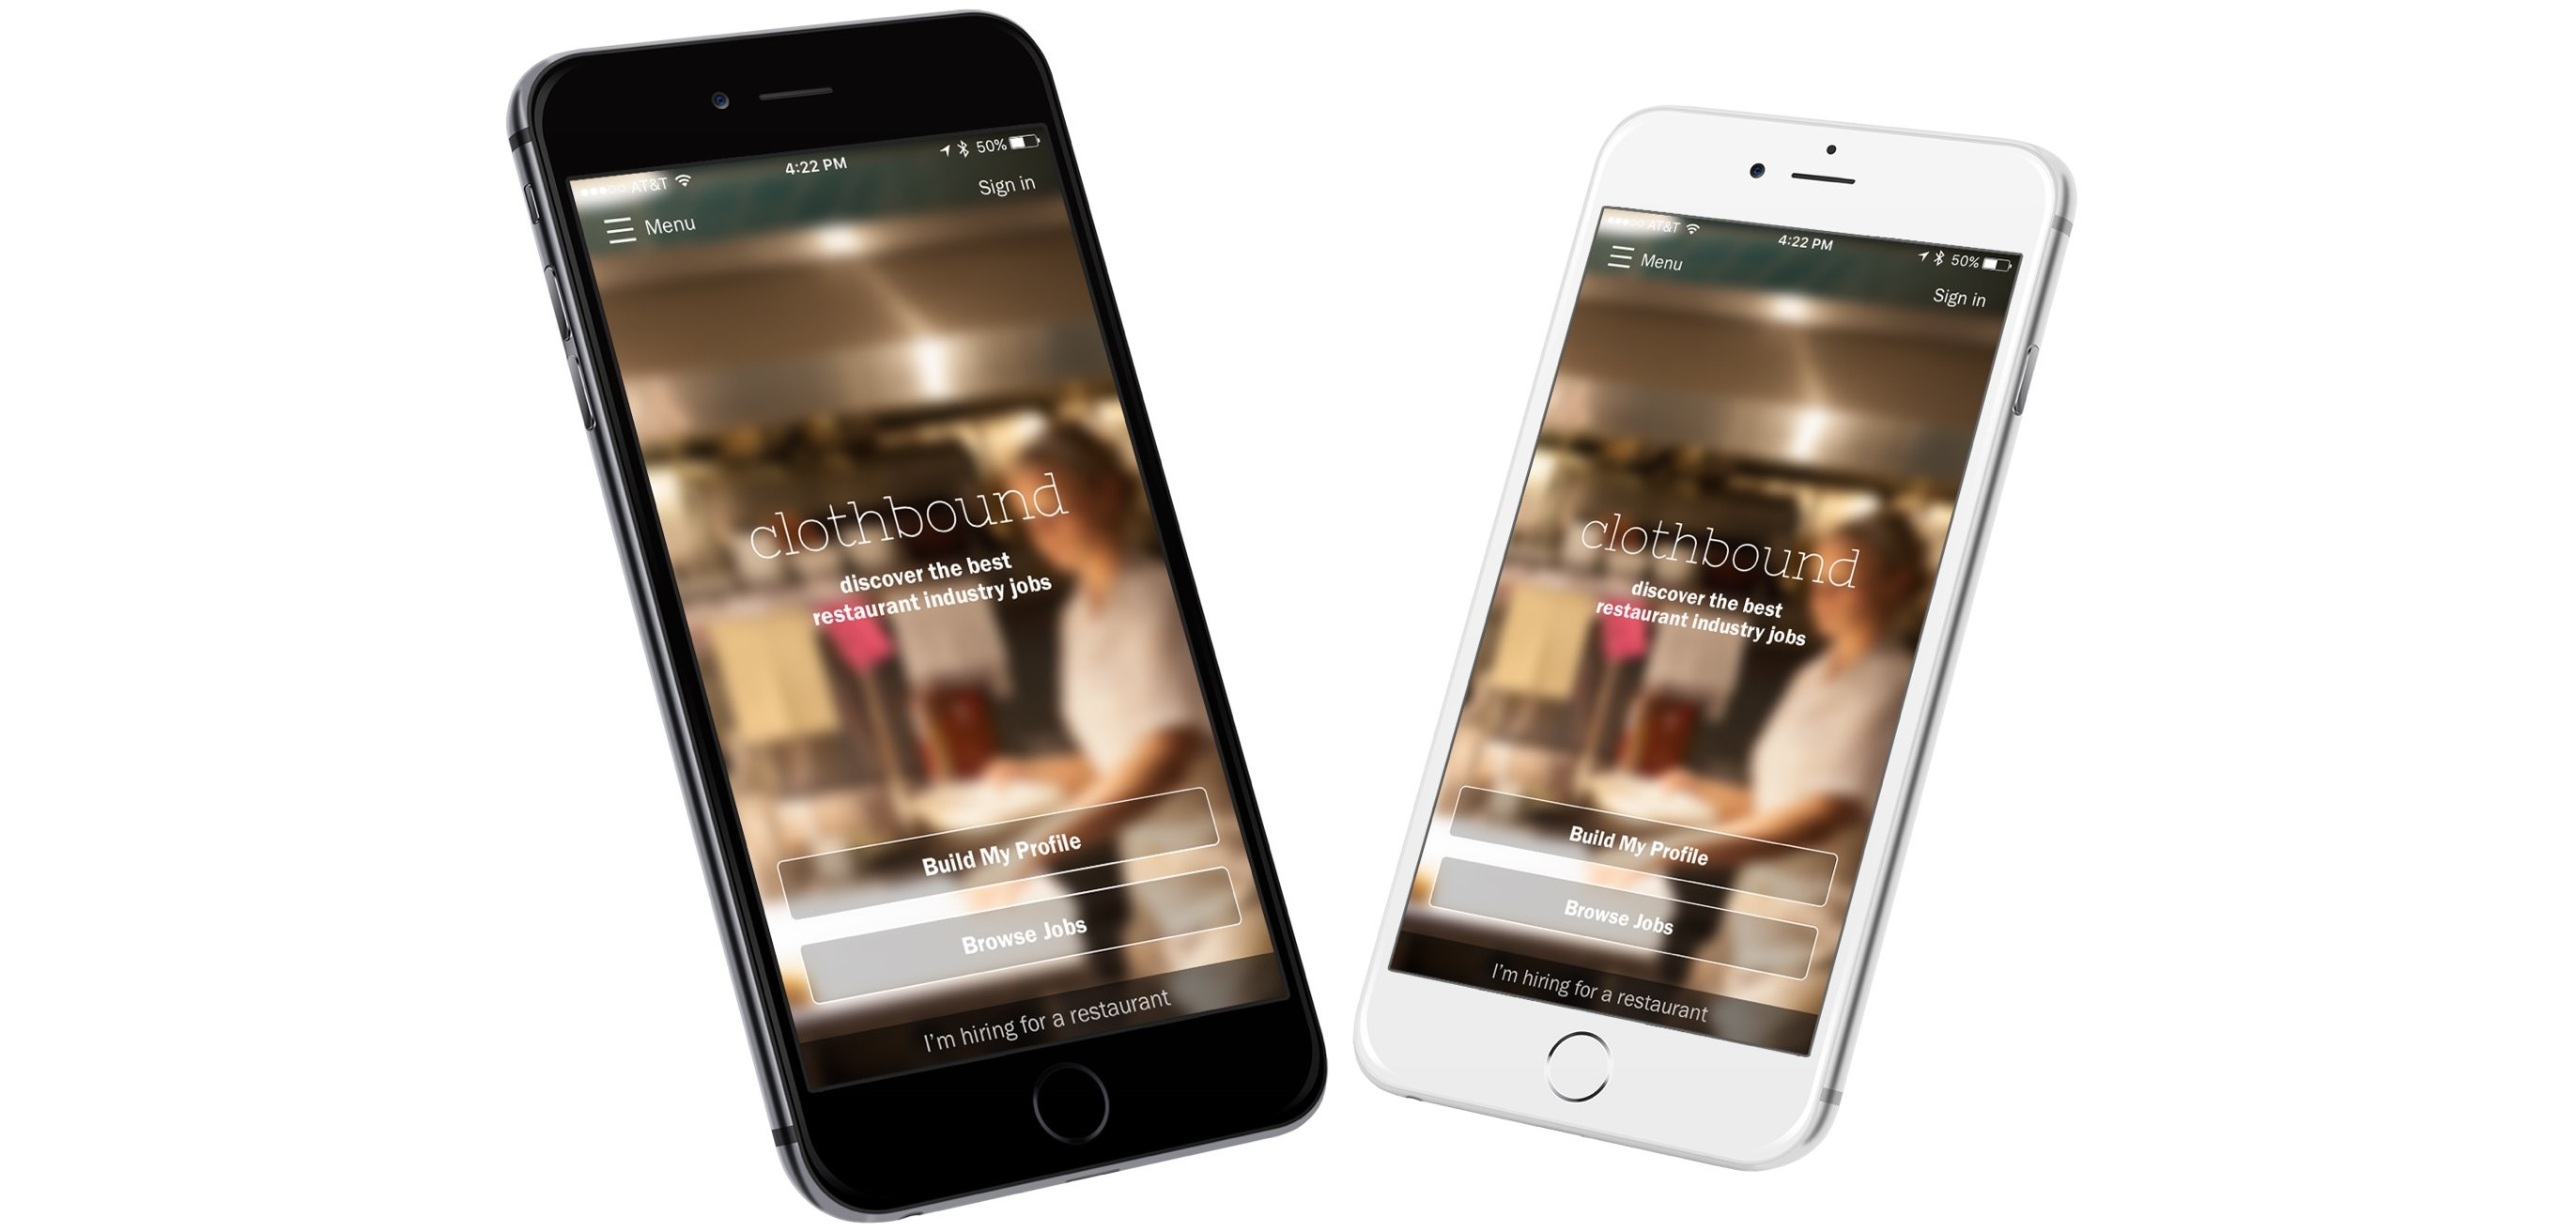 Clothbound app on two iPhones